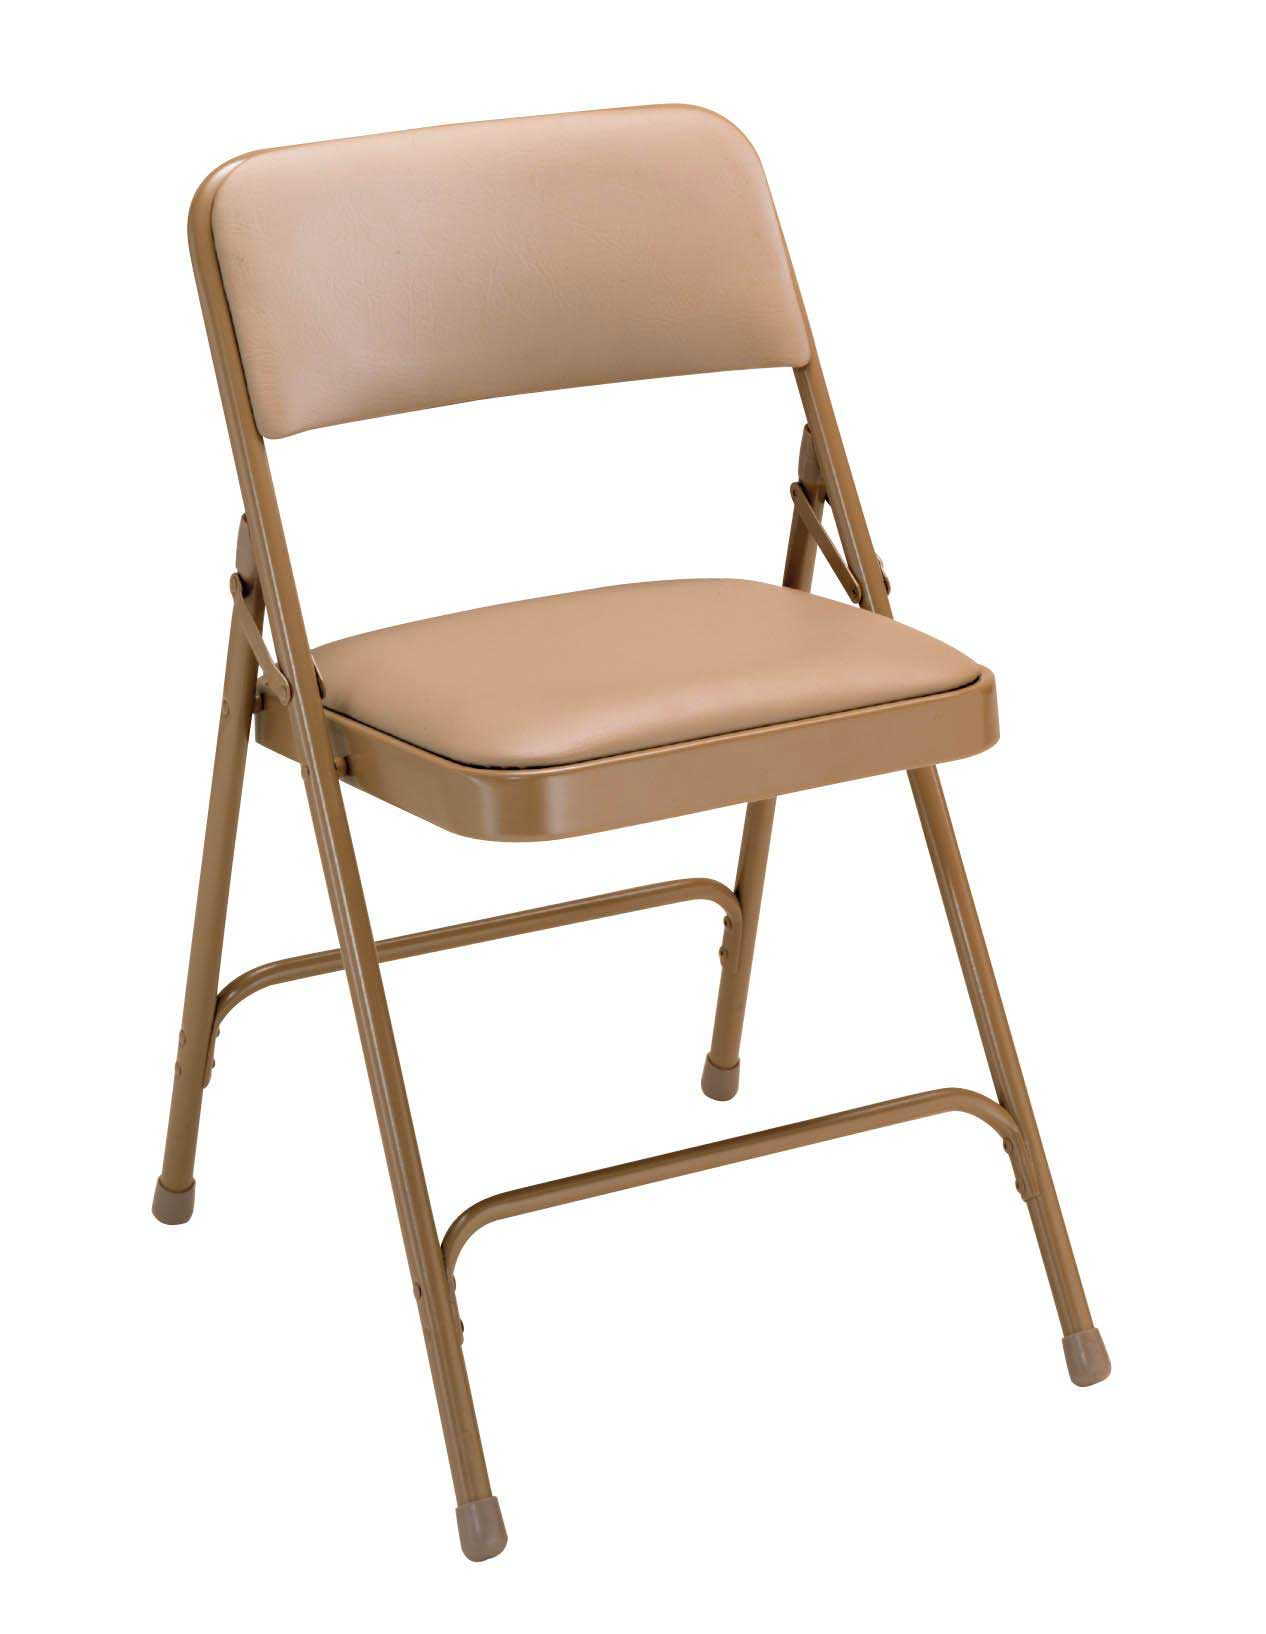 Upholstered Folding Chairs Folding Padded Chairs Style And Design